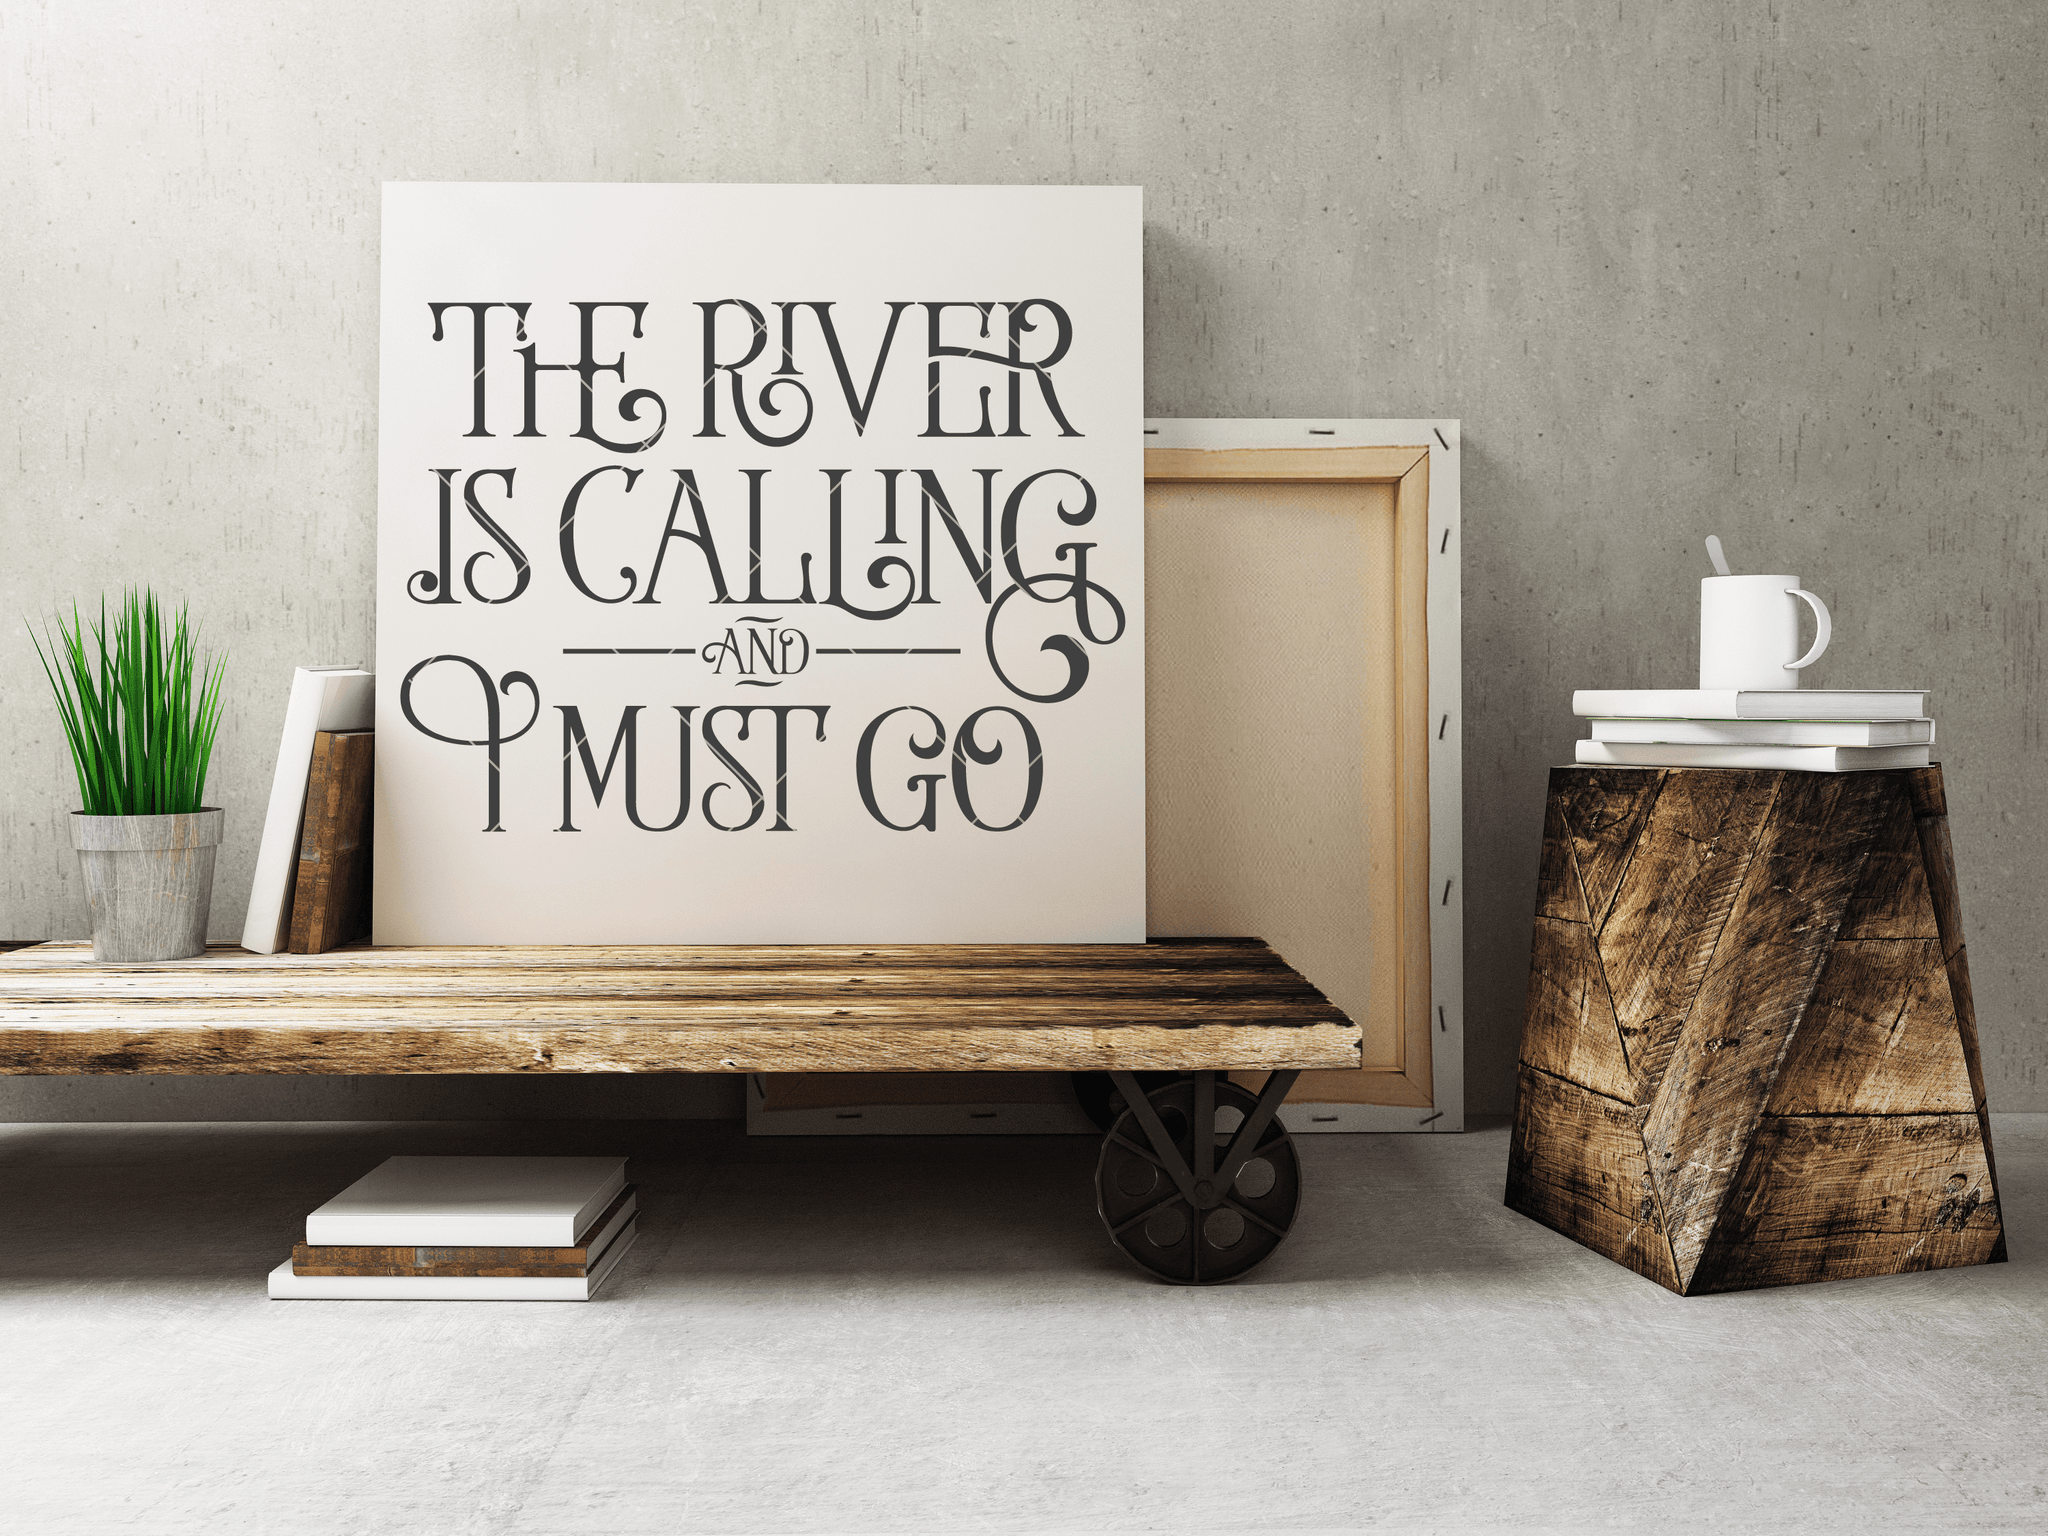 The River Is Calling And I Must Go SVG File - Commercial Use SVG Files